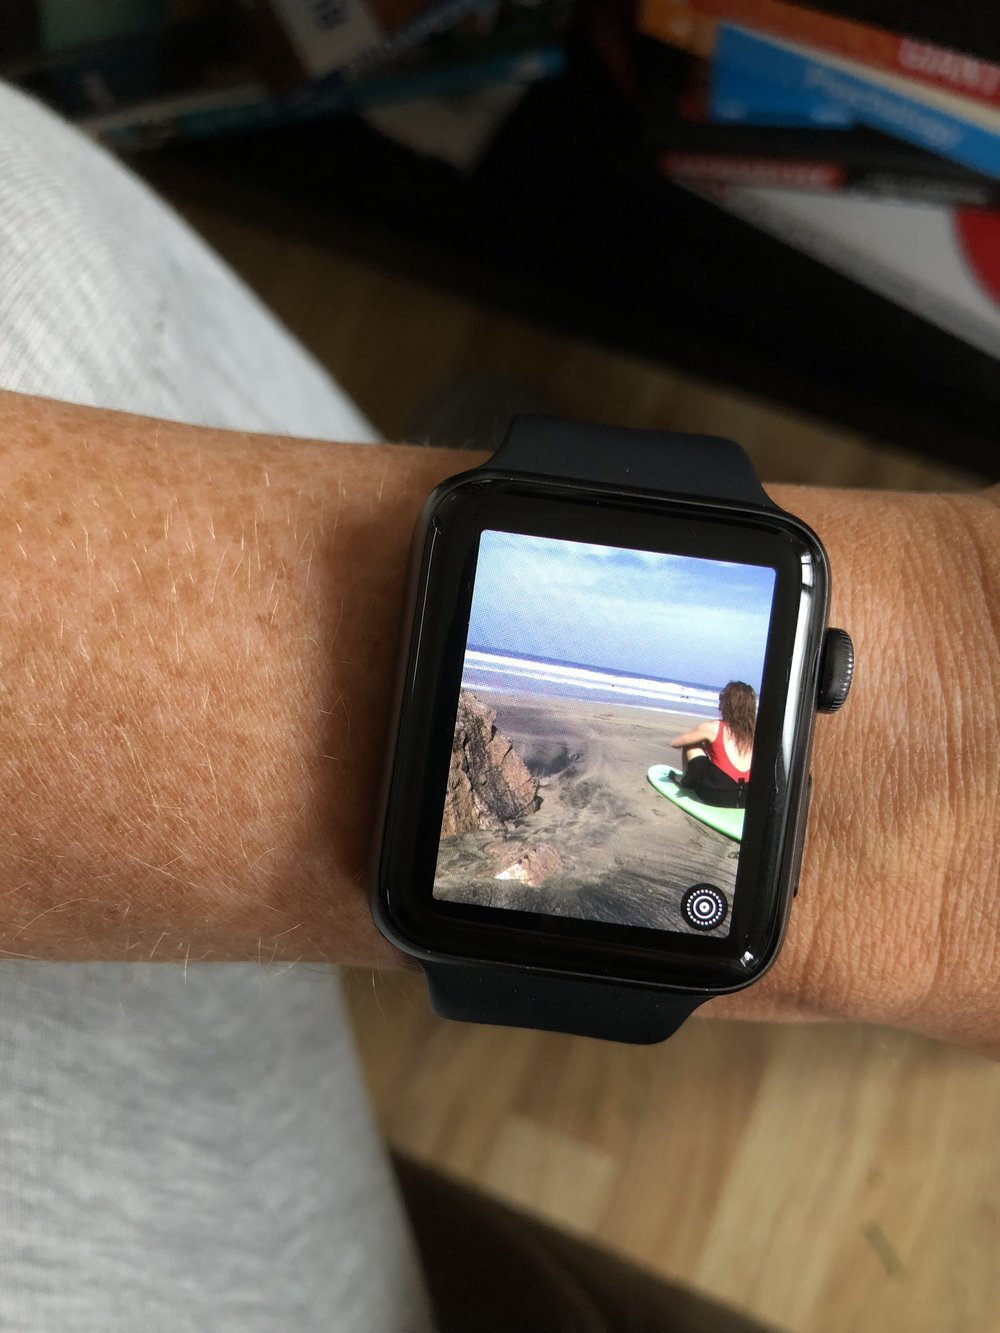 Photos taken on my iPhone and displayed on Apple Watch